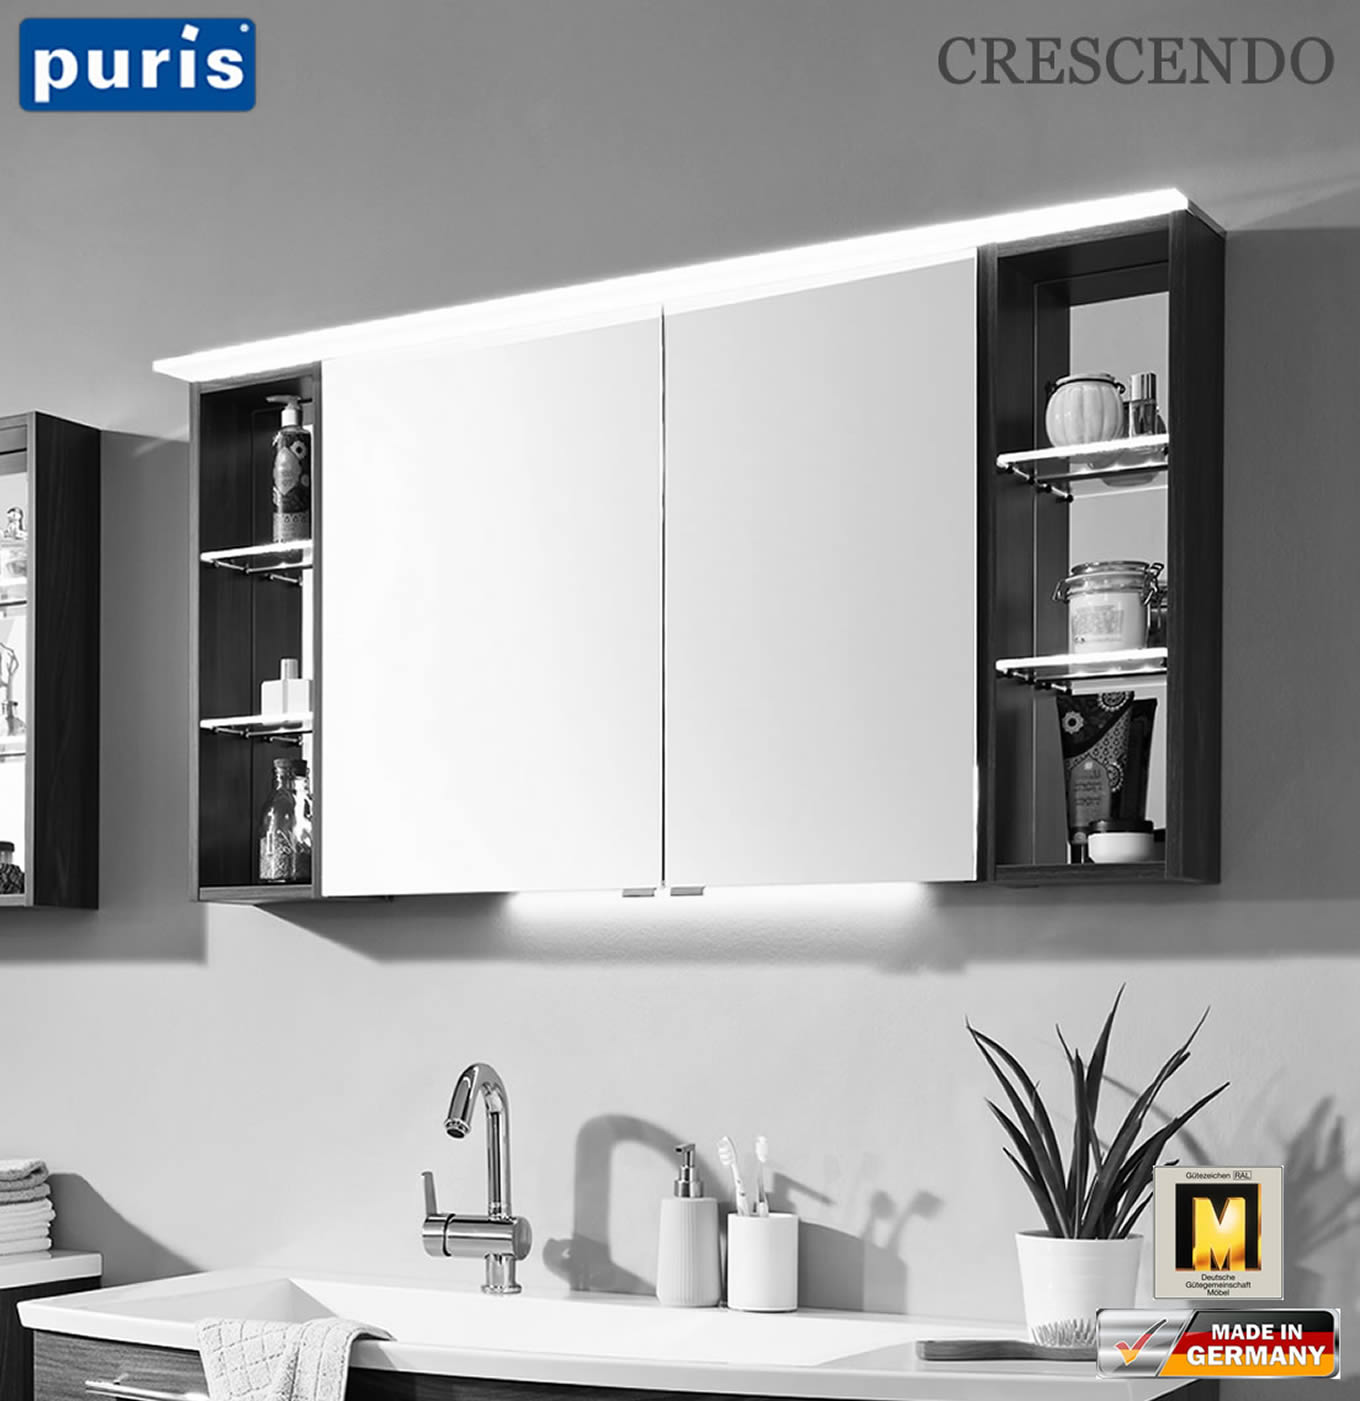 puris crescendo spiegelschrank 120 cm mit led fl chenleuchte s2a431276r impuls home. Black Bedroom Furniture Sets. Home Design Ideas